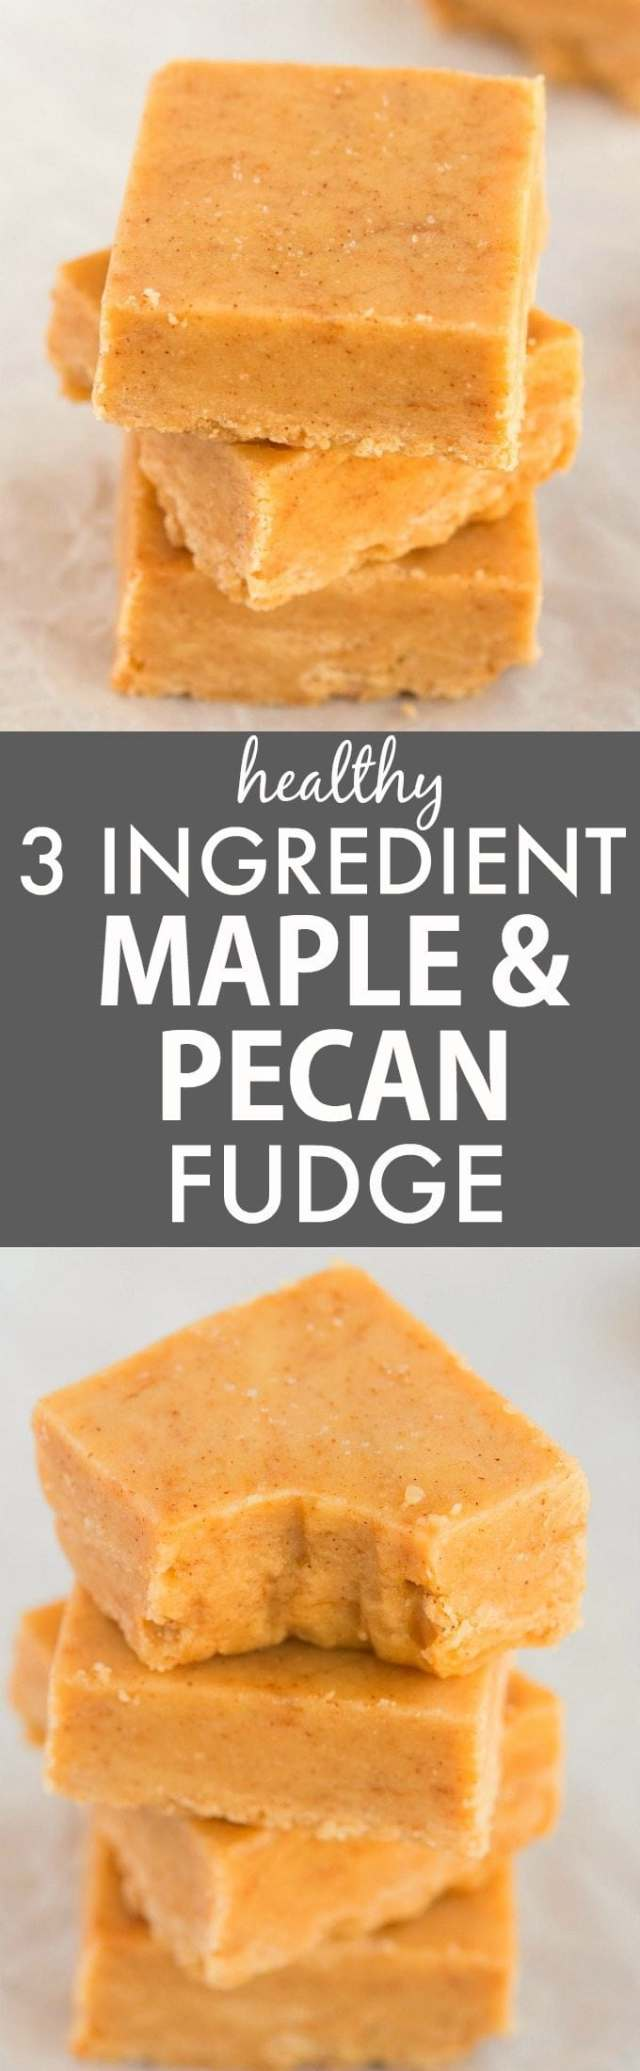 Healthy 3 Ingredient Maple Pecan Fudge (V, GF, Paleo)- Smooth, creamy and melt-in-your mouth fudge which takes minutes and has NO dairy, refined sugar or butter but you'd never tell- A delicious snack or dessert! {vegan, gluten free, paleo recipe}- thebigmansworld.com